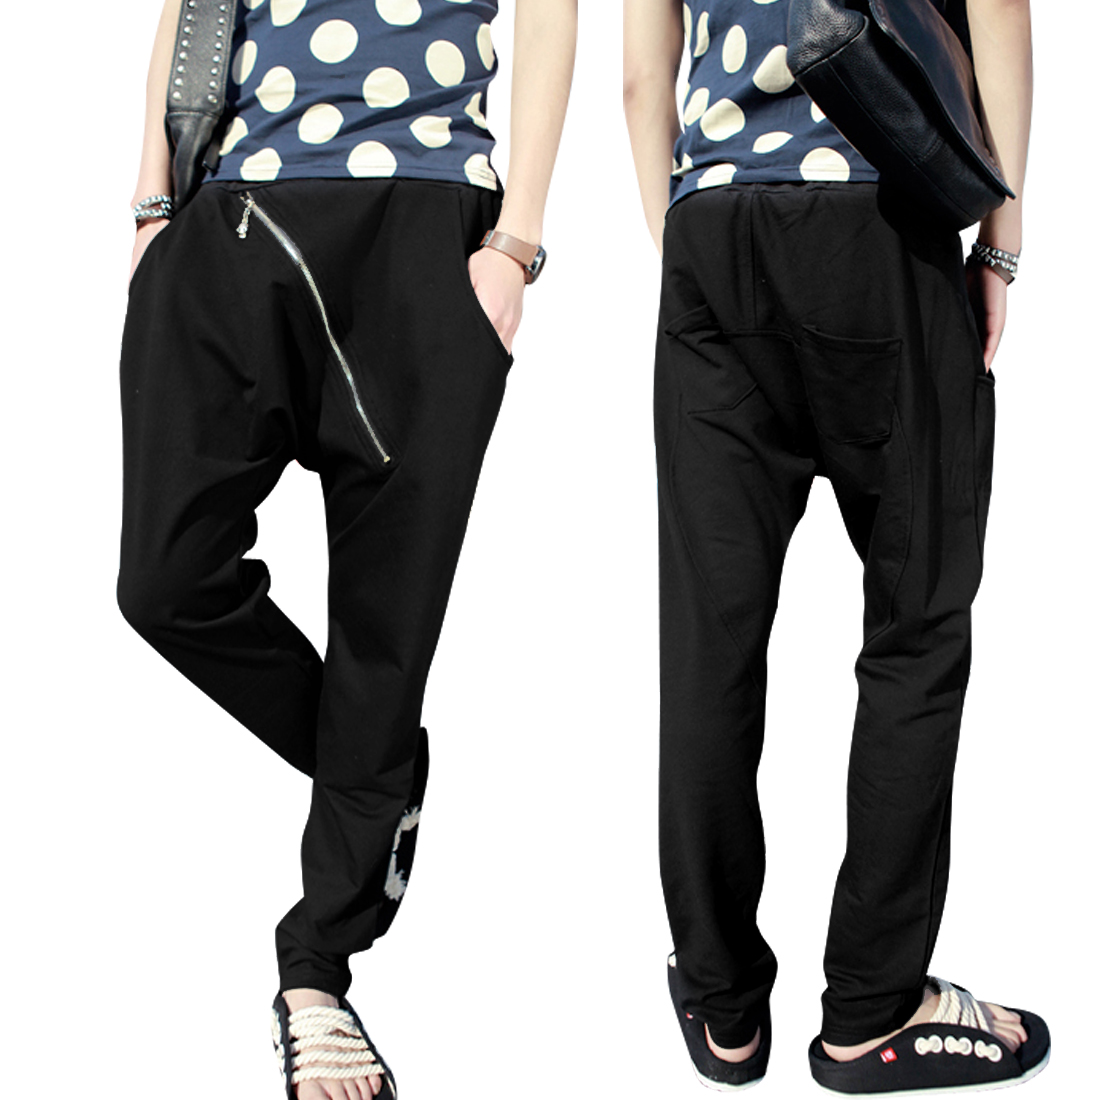 Men's Elastic Waist Zip Decor w Pockets Black Harem Pants S